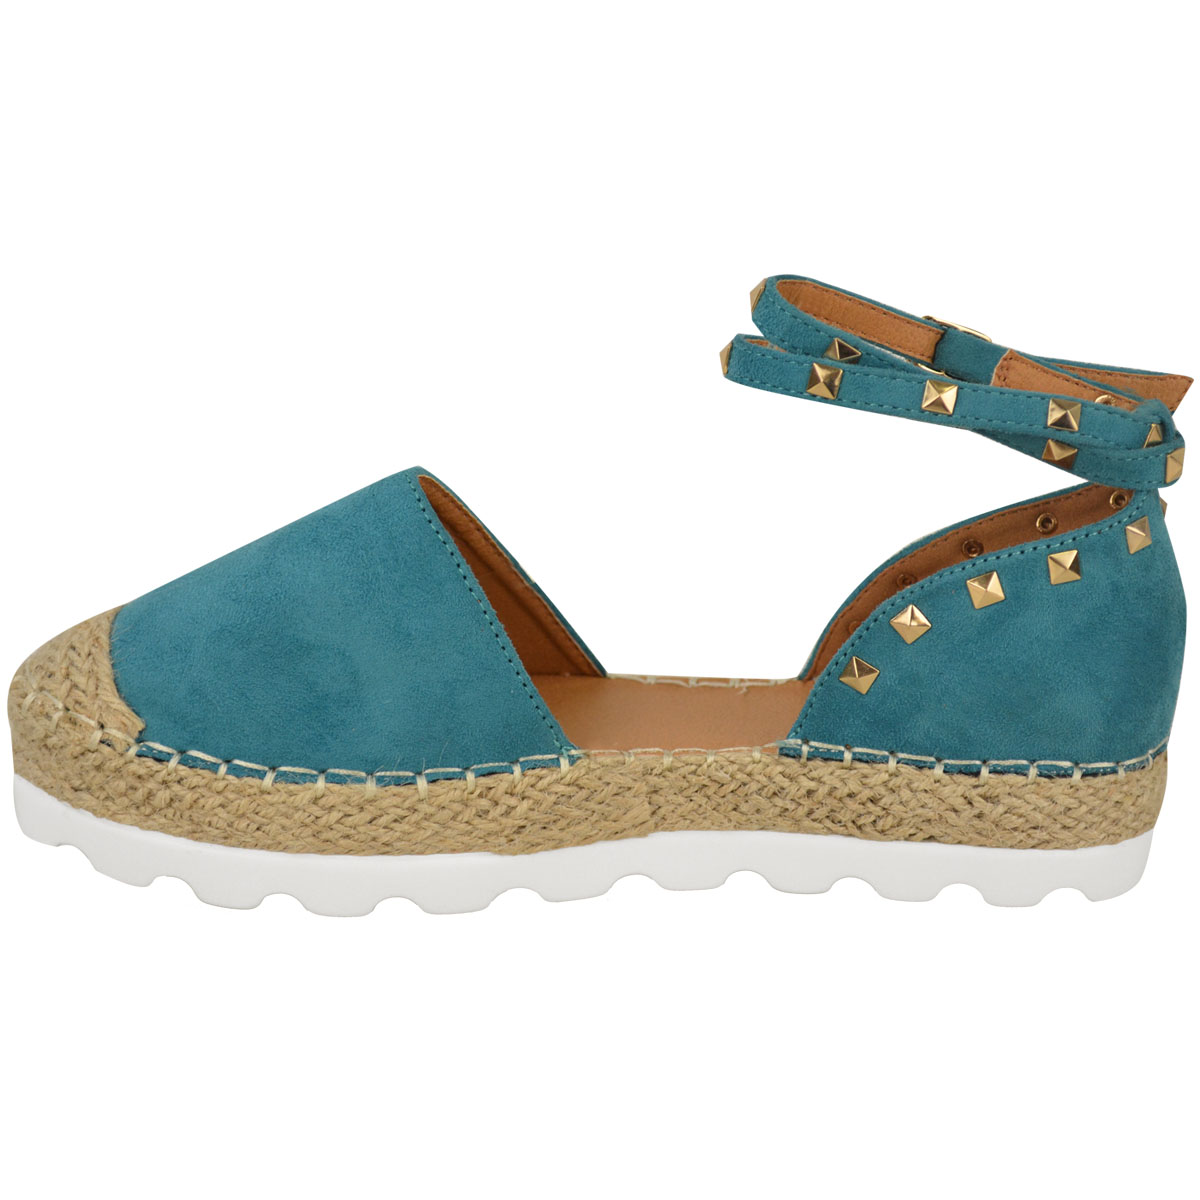 Womens-Ladies-Espadrilles-Flat-Pom-Pom-Sandals-Slip-On-Strappy-Comfy-Size-Shoes thumbnail 16